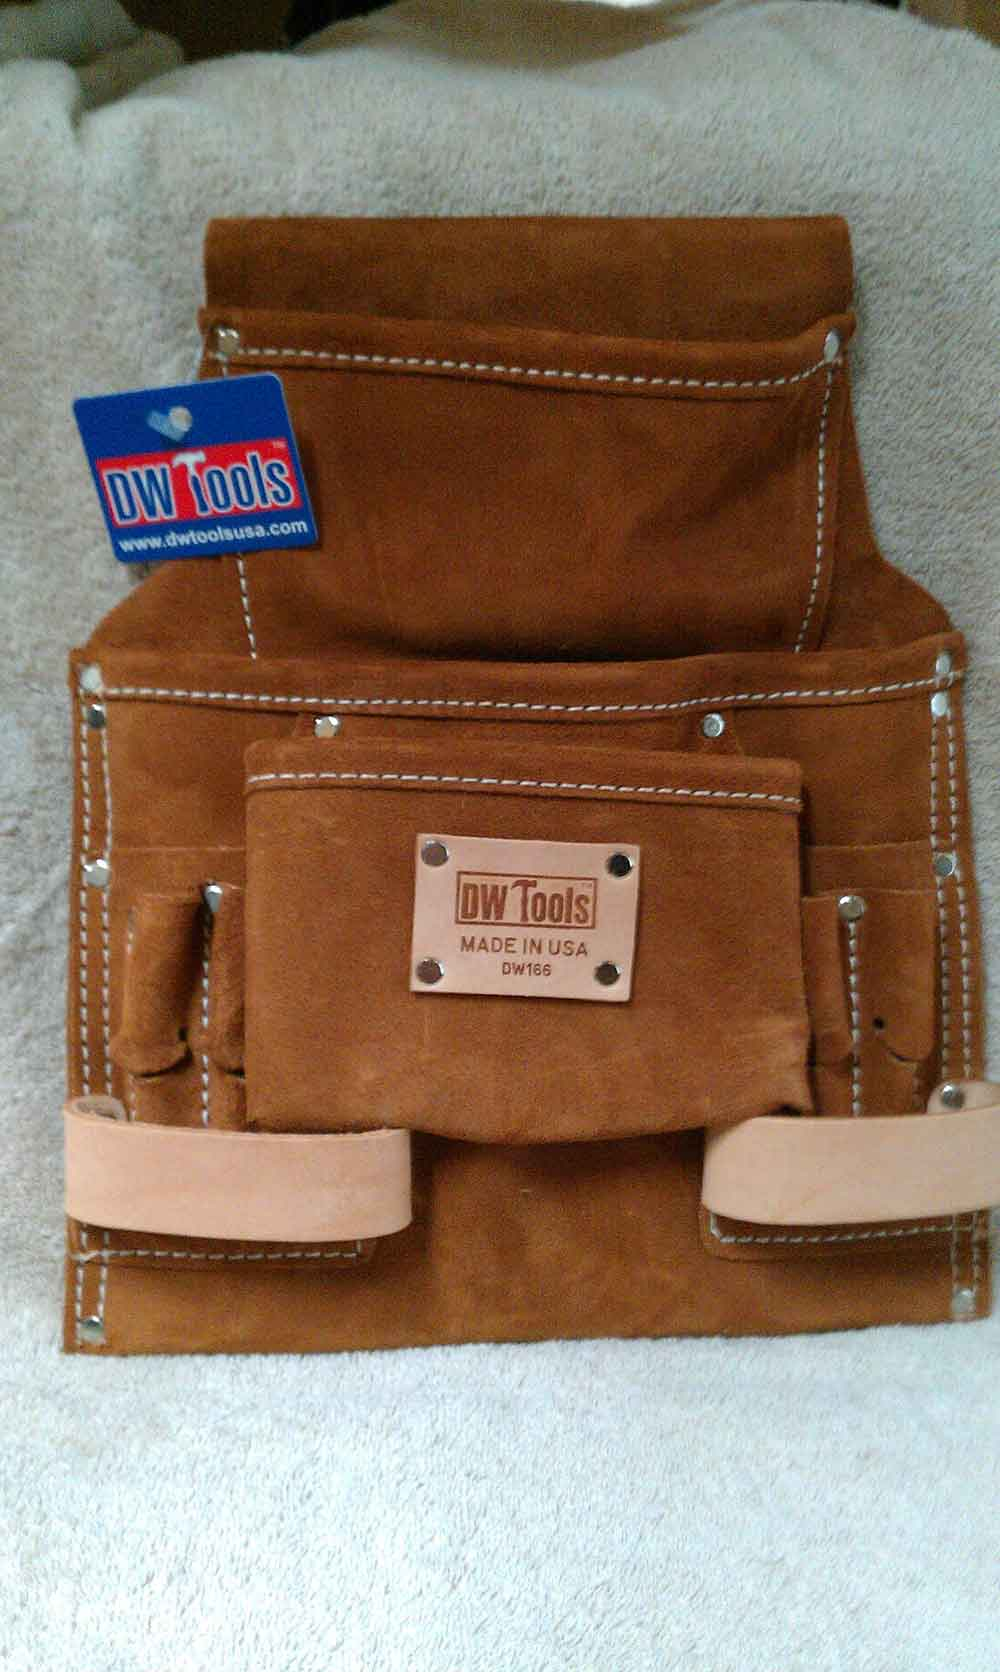 10 POCKET TOOL POUCH DW166